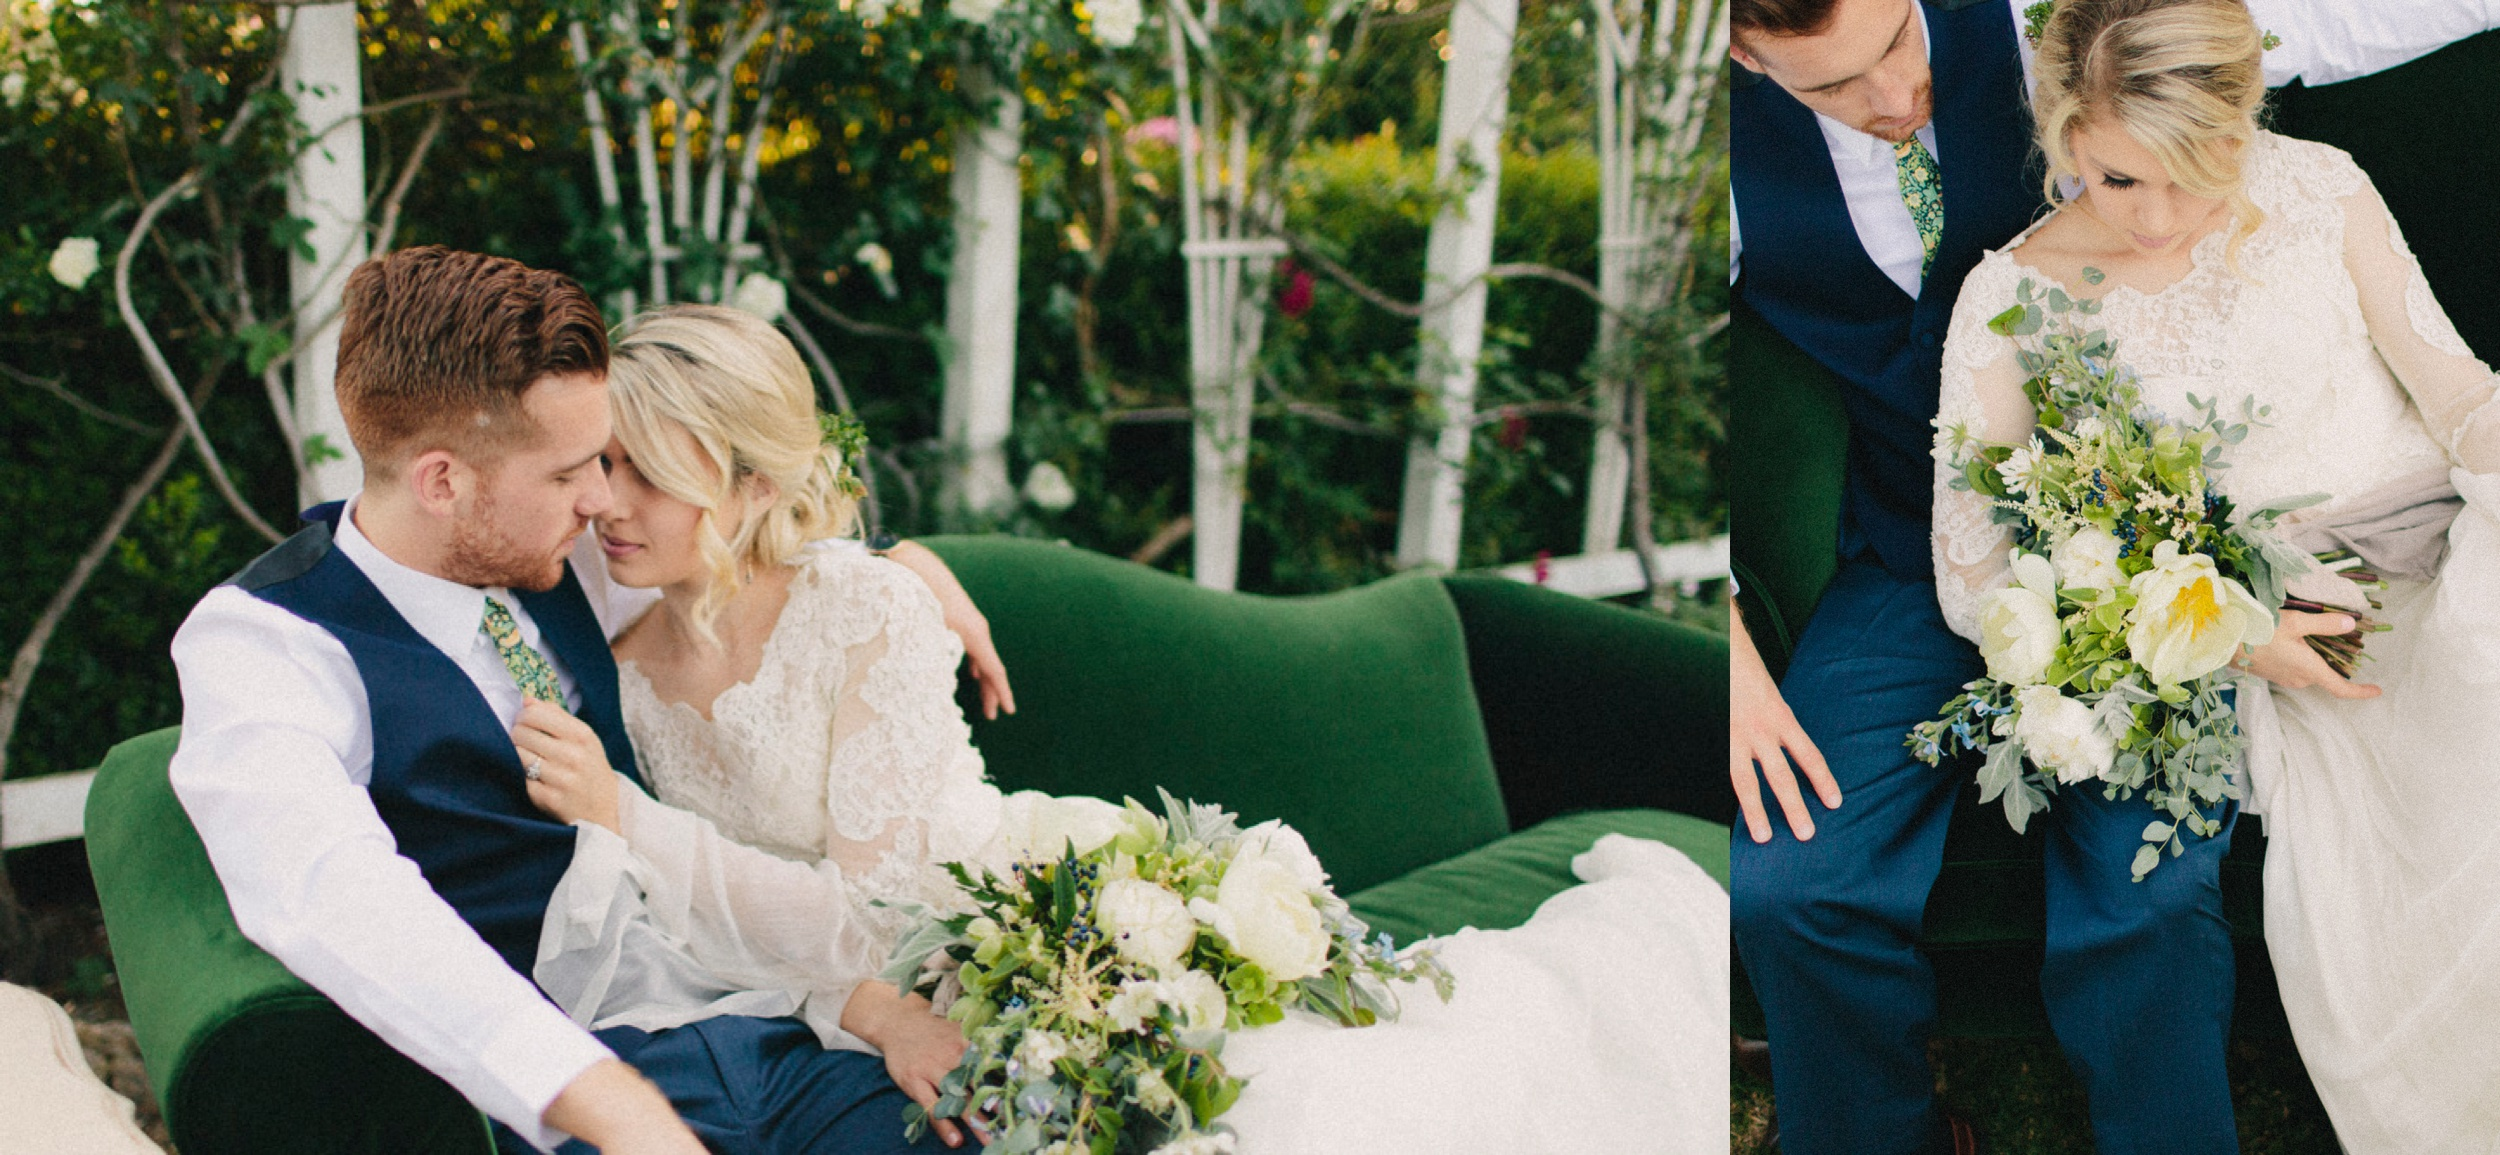 Ethereal Garden Inspired Wedding , Linden Clover Photography_0040.jpg